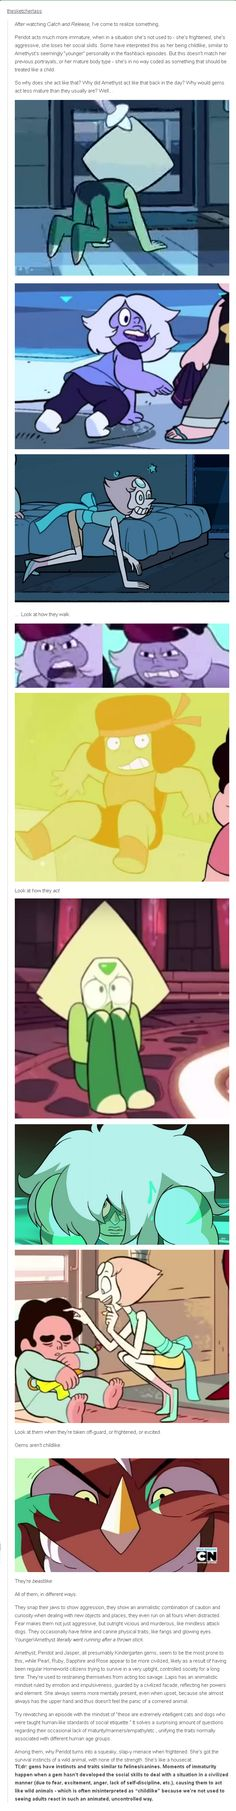 I think that peridot is a lot longer than amethyst. I also don't think she's a kindergarten gem. I don't have anything on jasper except that  I think she's a fusion.